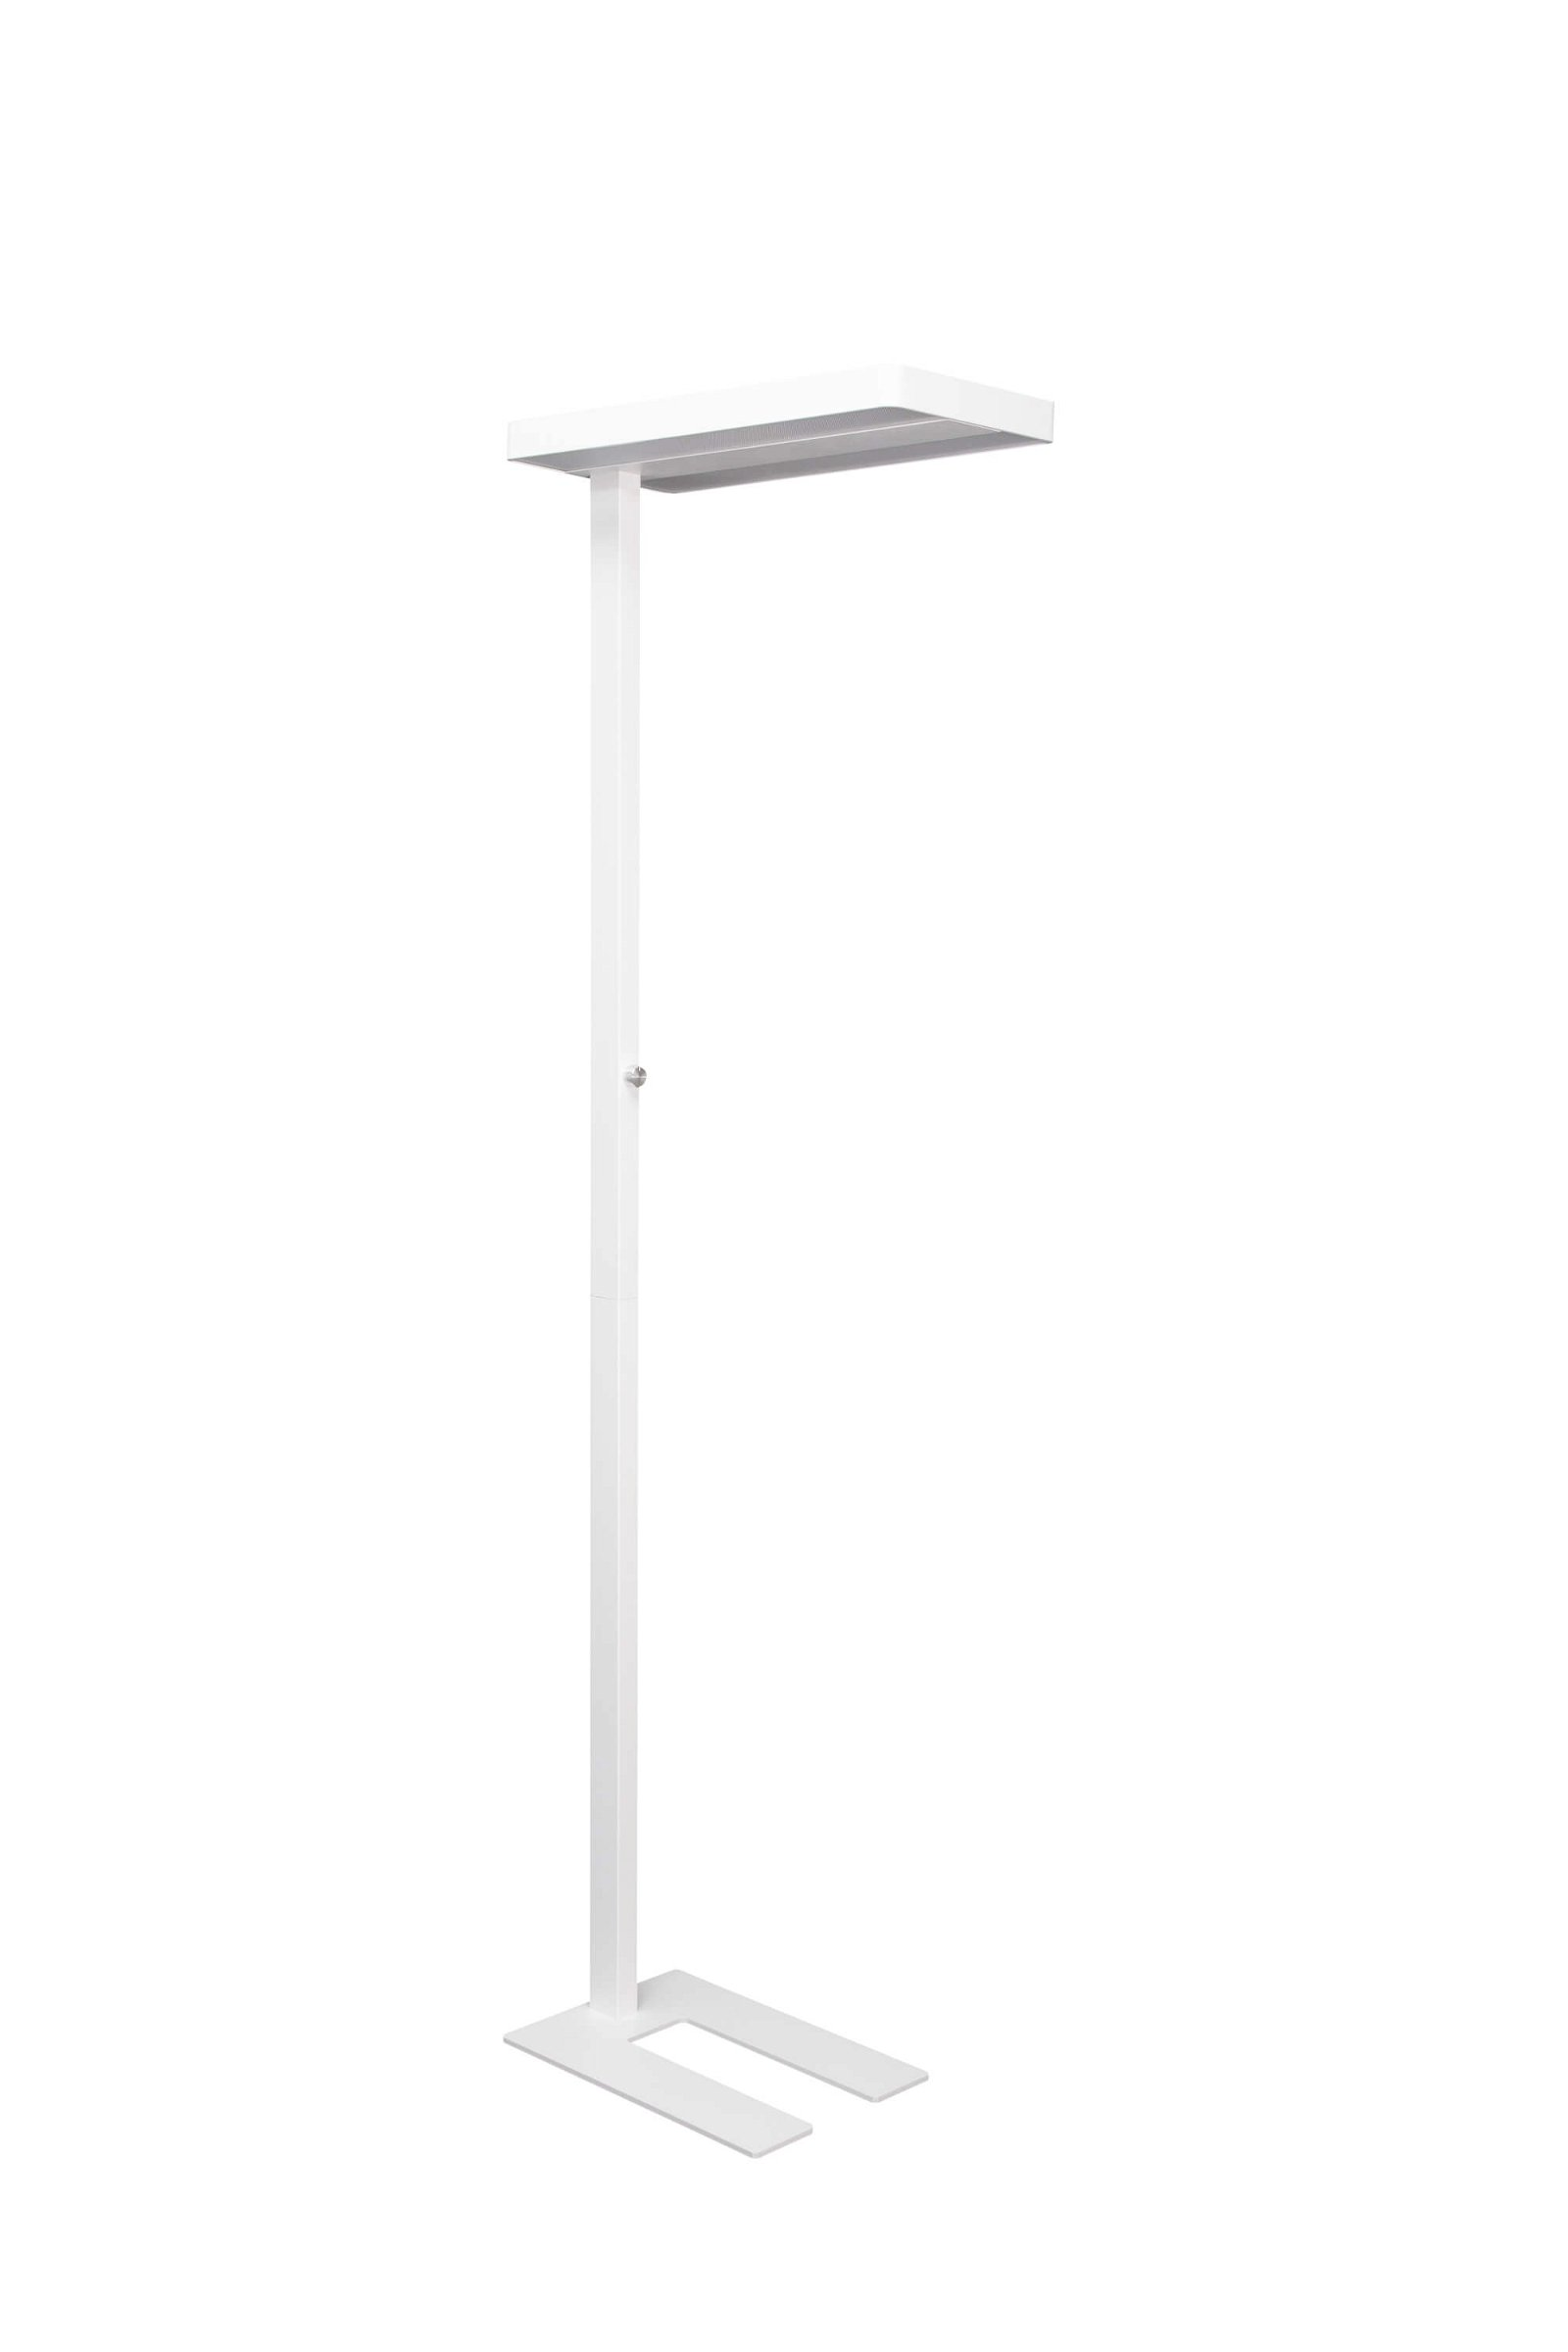 LED-Standleuchte MAULjaval, dimmbar